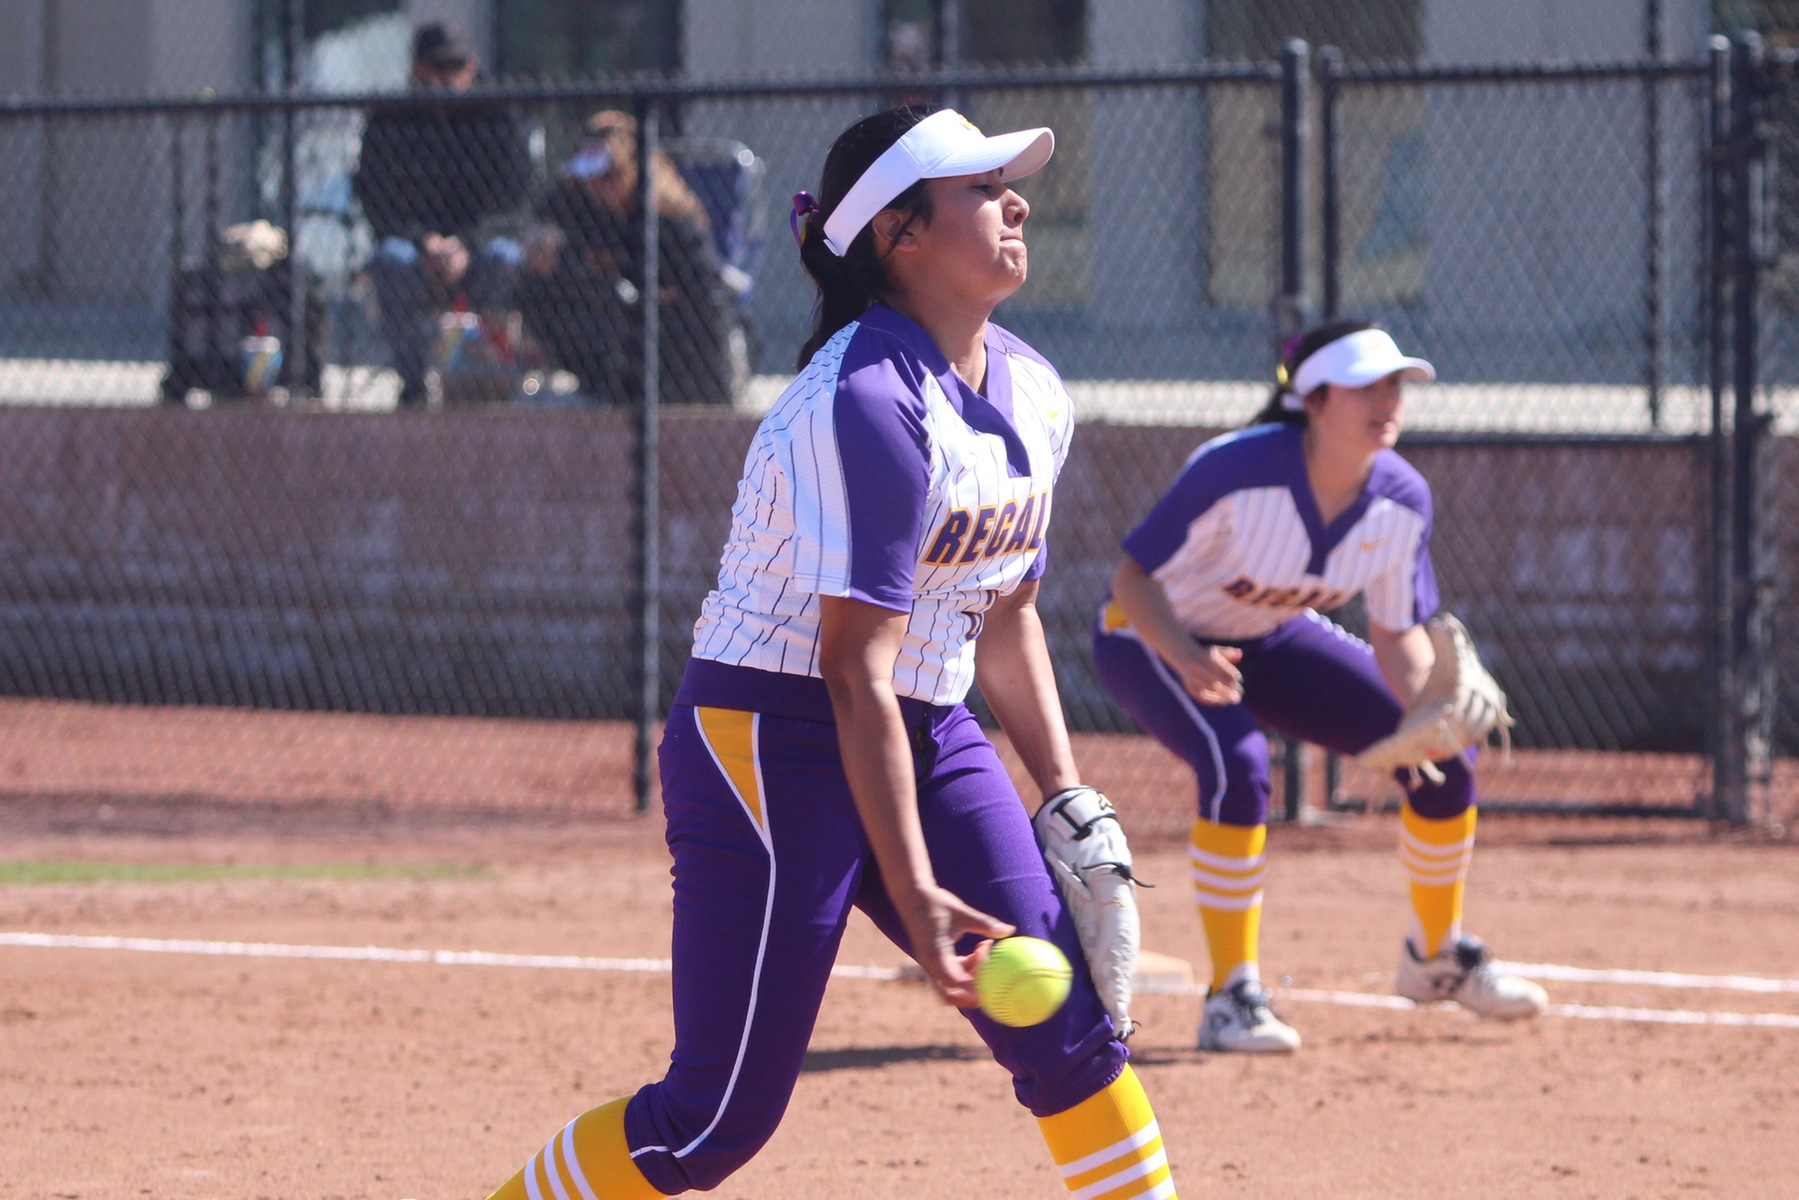 Olivia Serrano pitched the entire second game as the Regals defeated the Tigers 5-4.